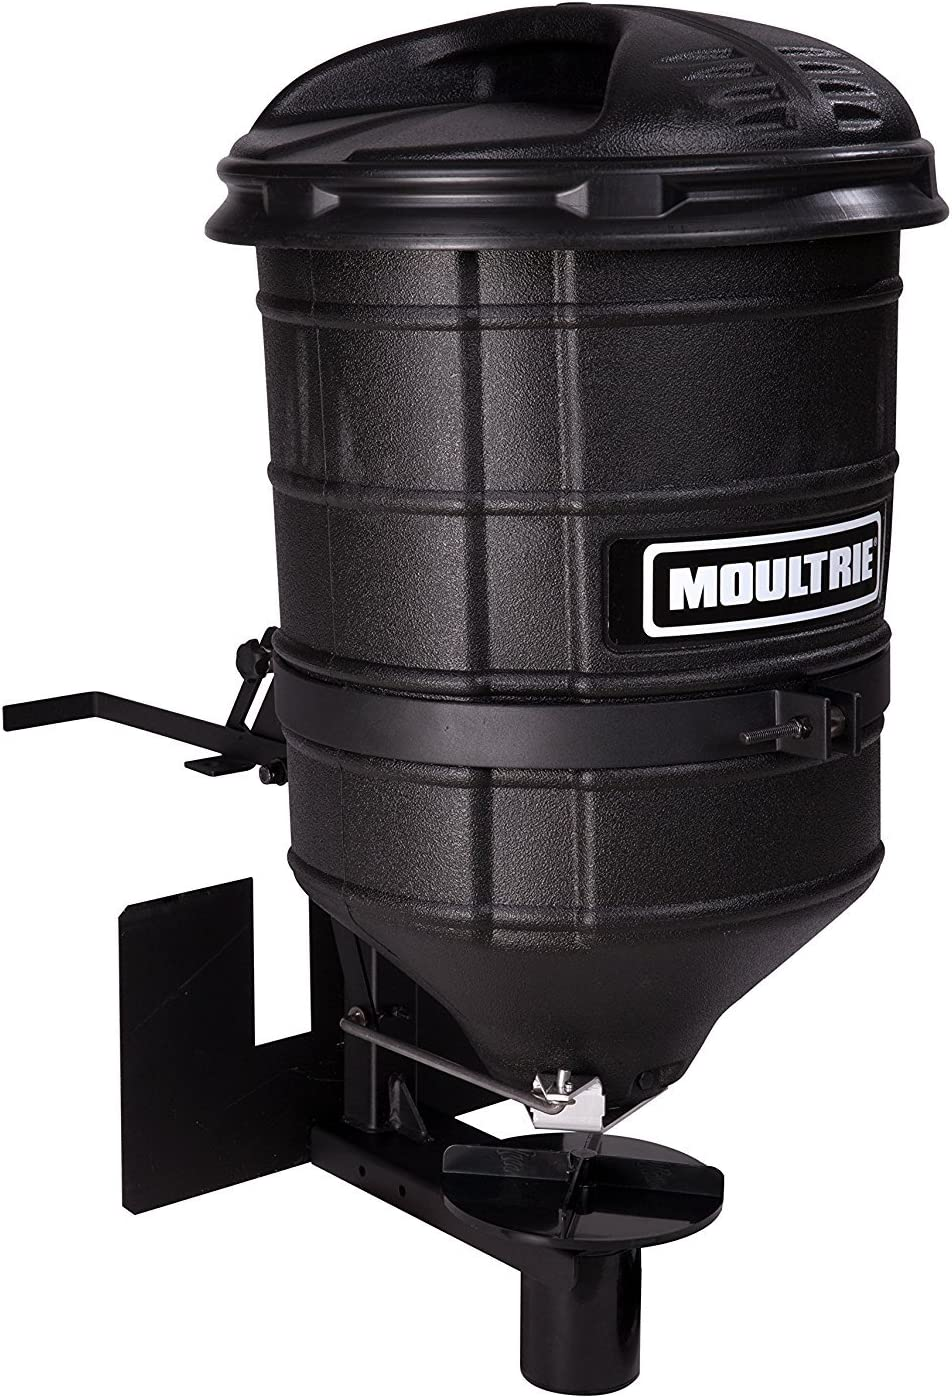 Moultrie ATV Spreader – Manual Feed Gate 71cTajXiVwLSL1500_